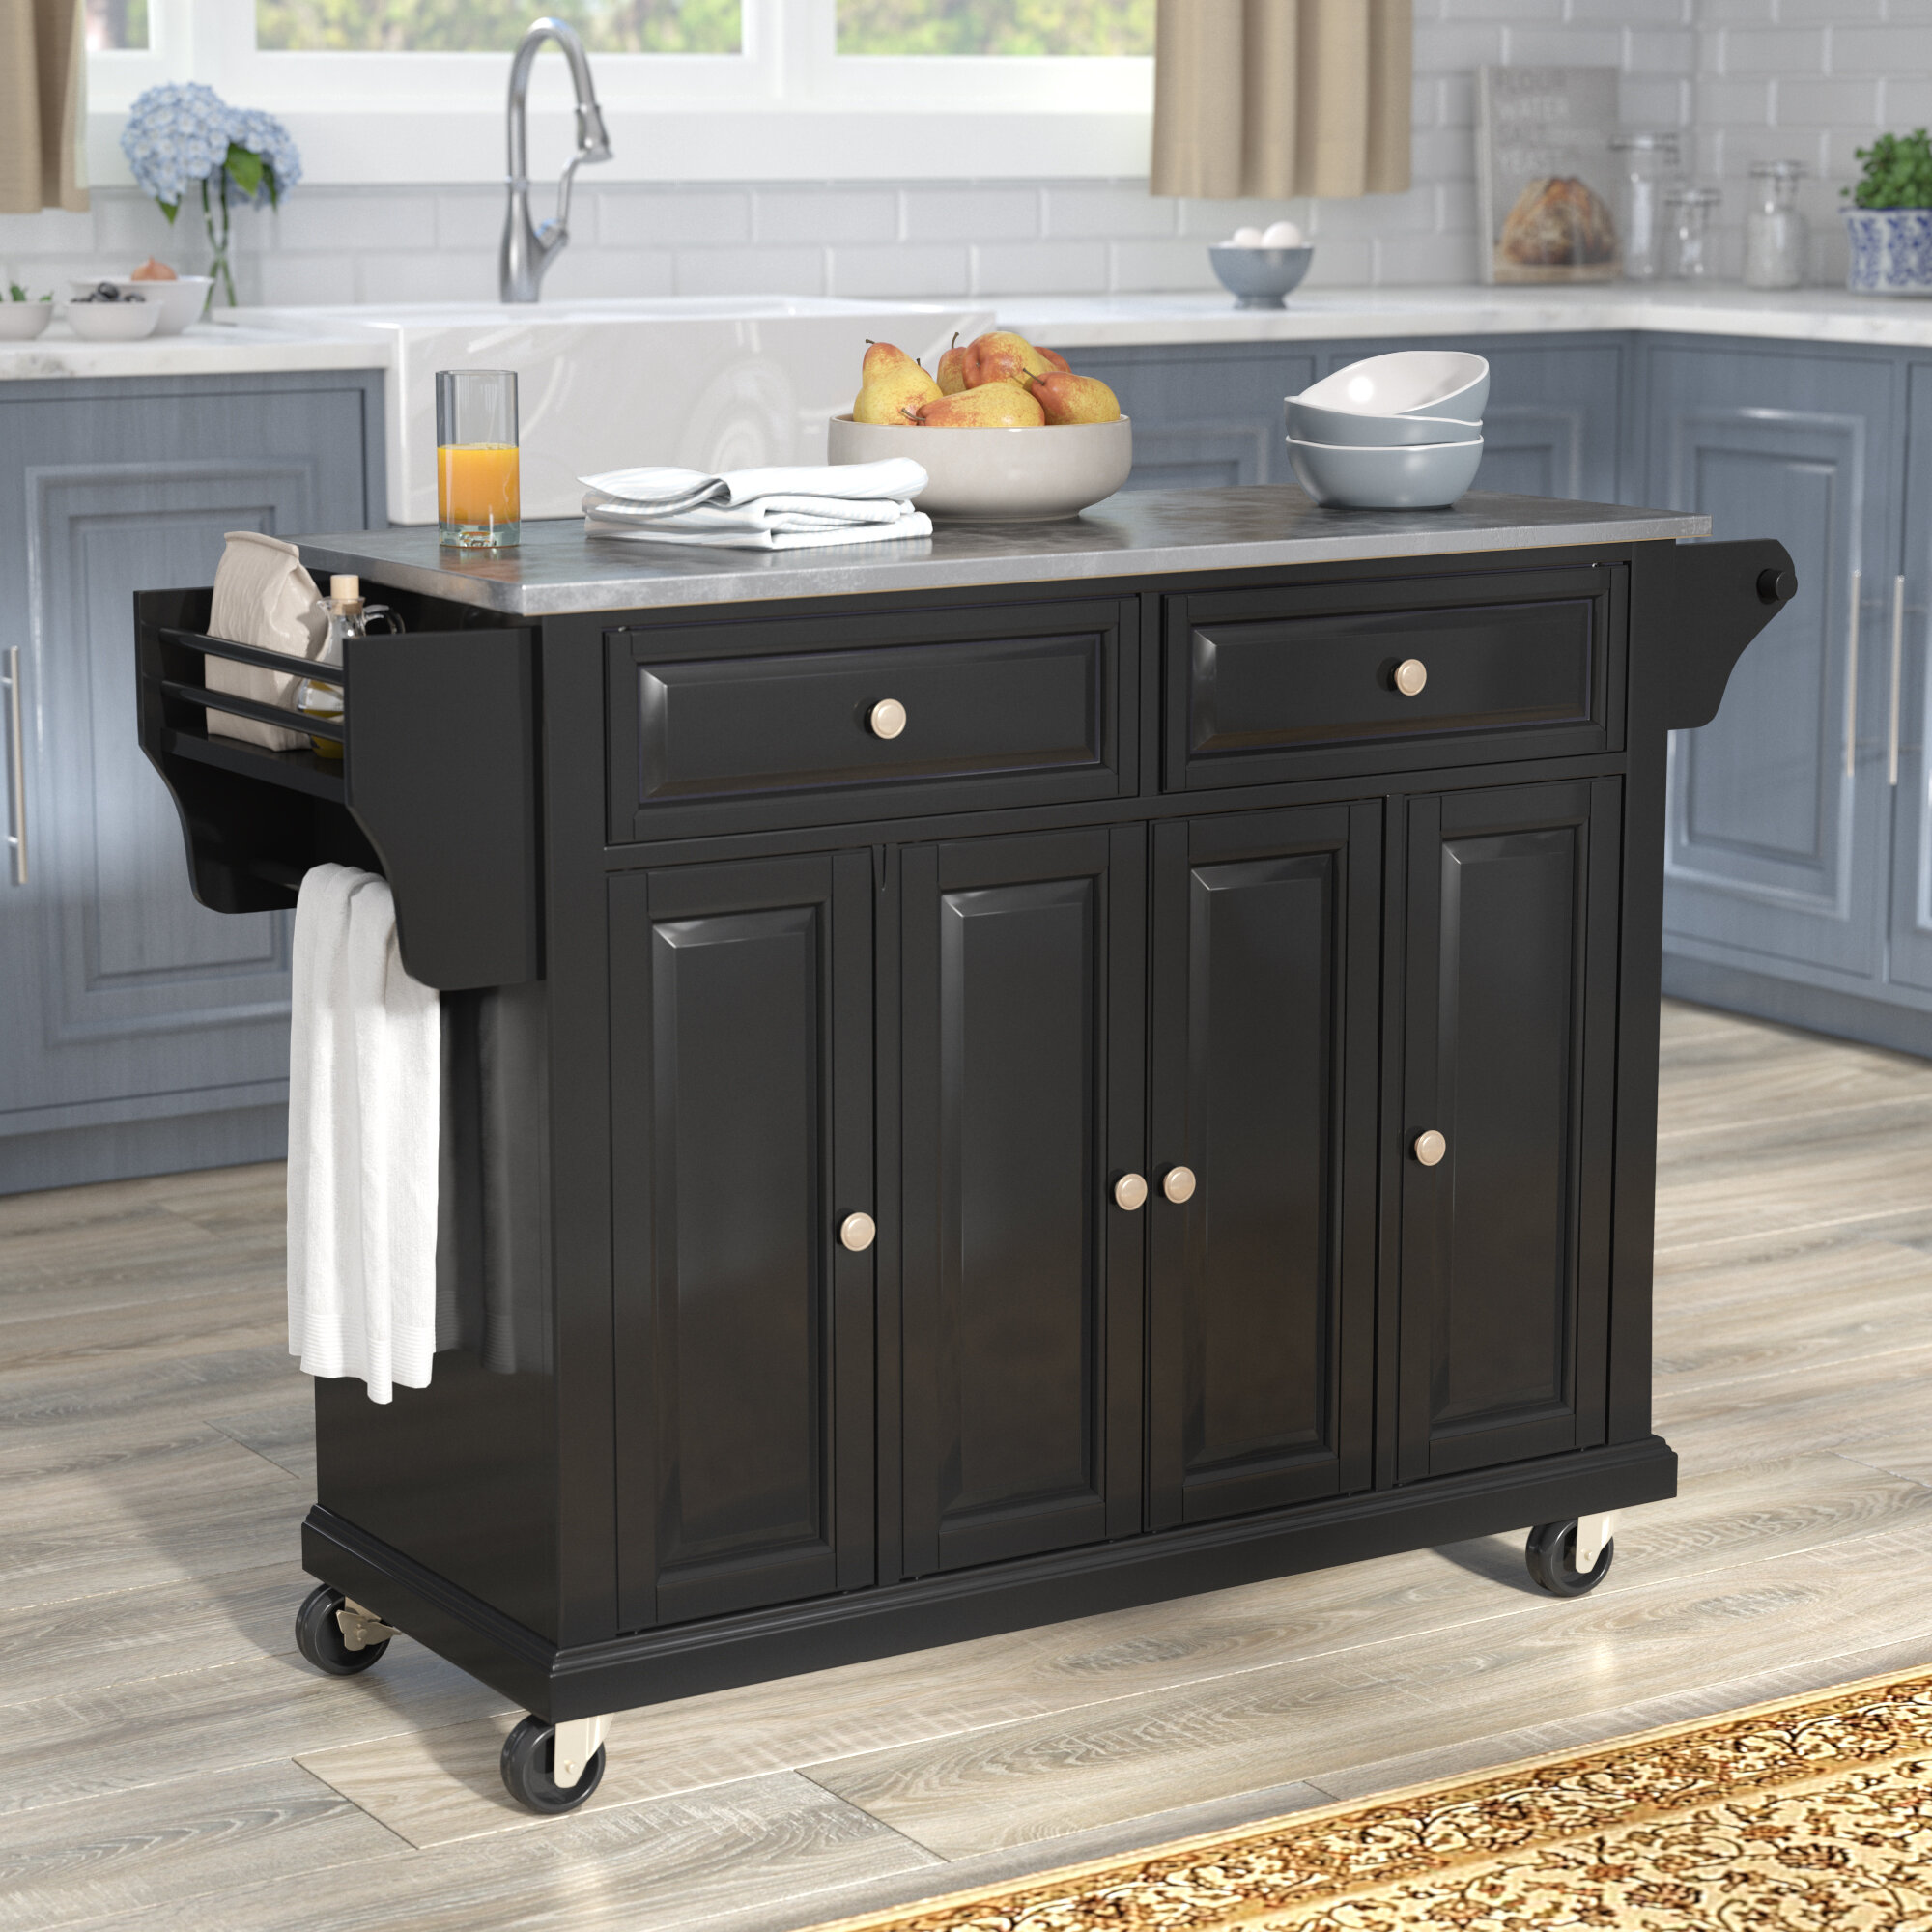 Darby Home Co Chan Kitchen Island With Stainless Steel Top U0026 Reviews |  Wayfair